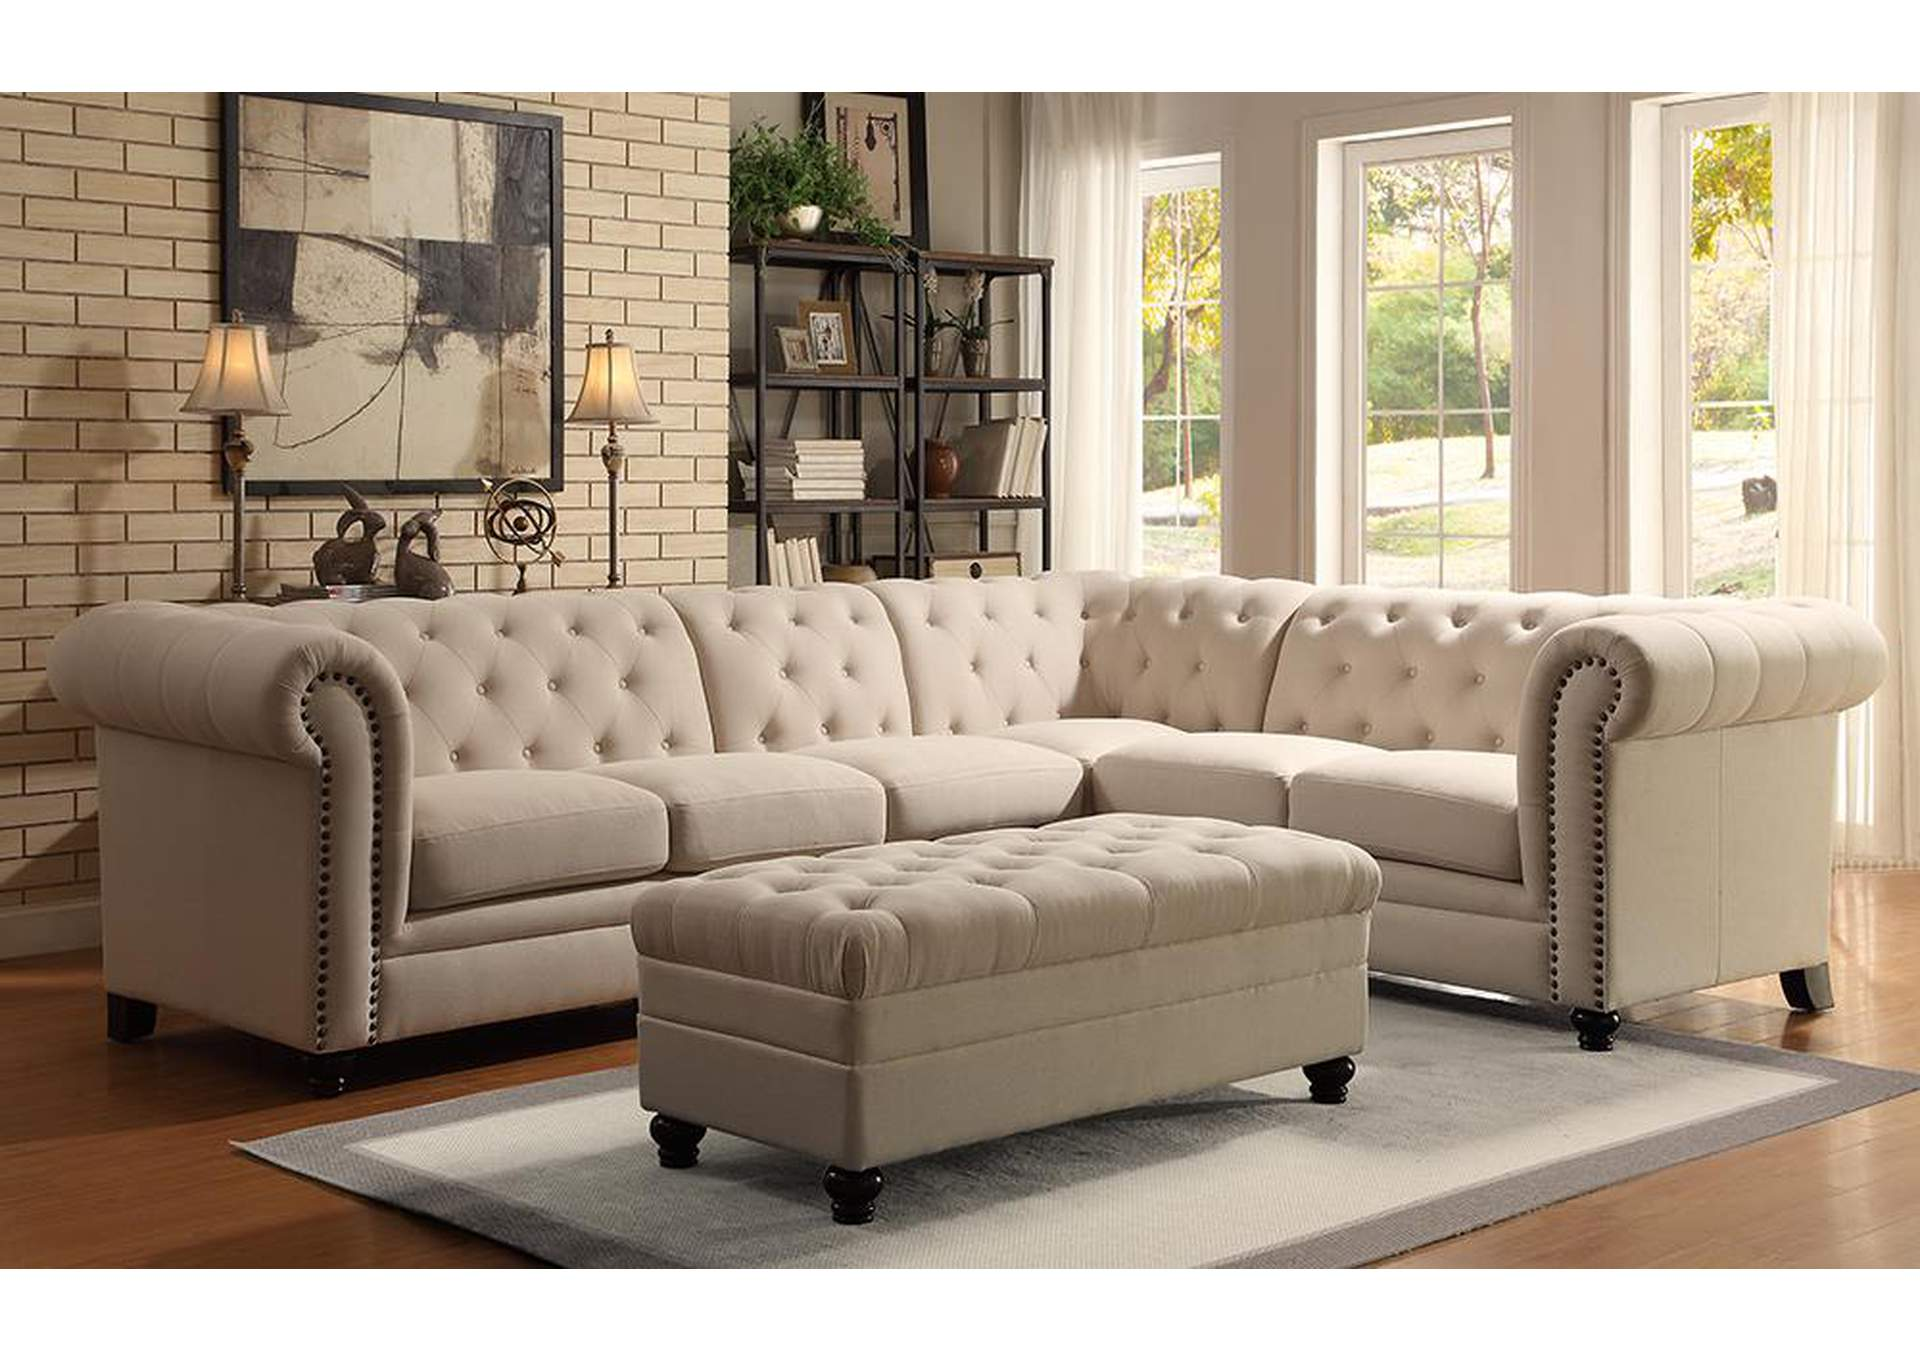 Coral Reef Roy Oatmeal Sectional,Coaster Furniture